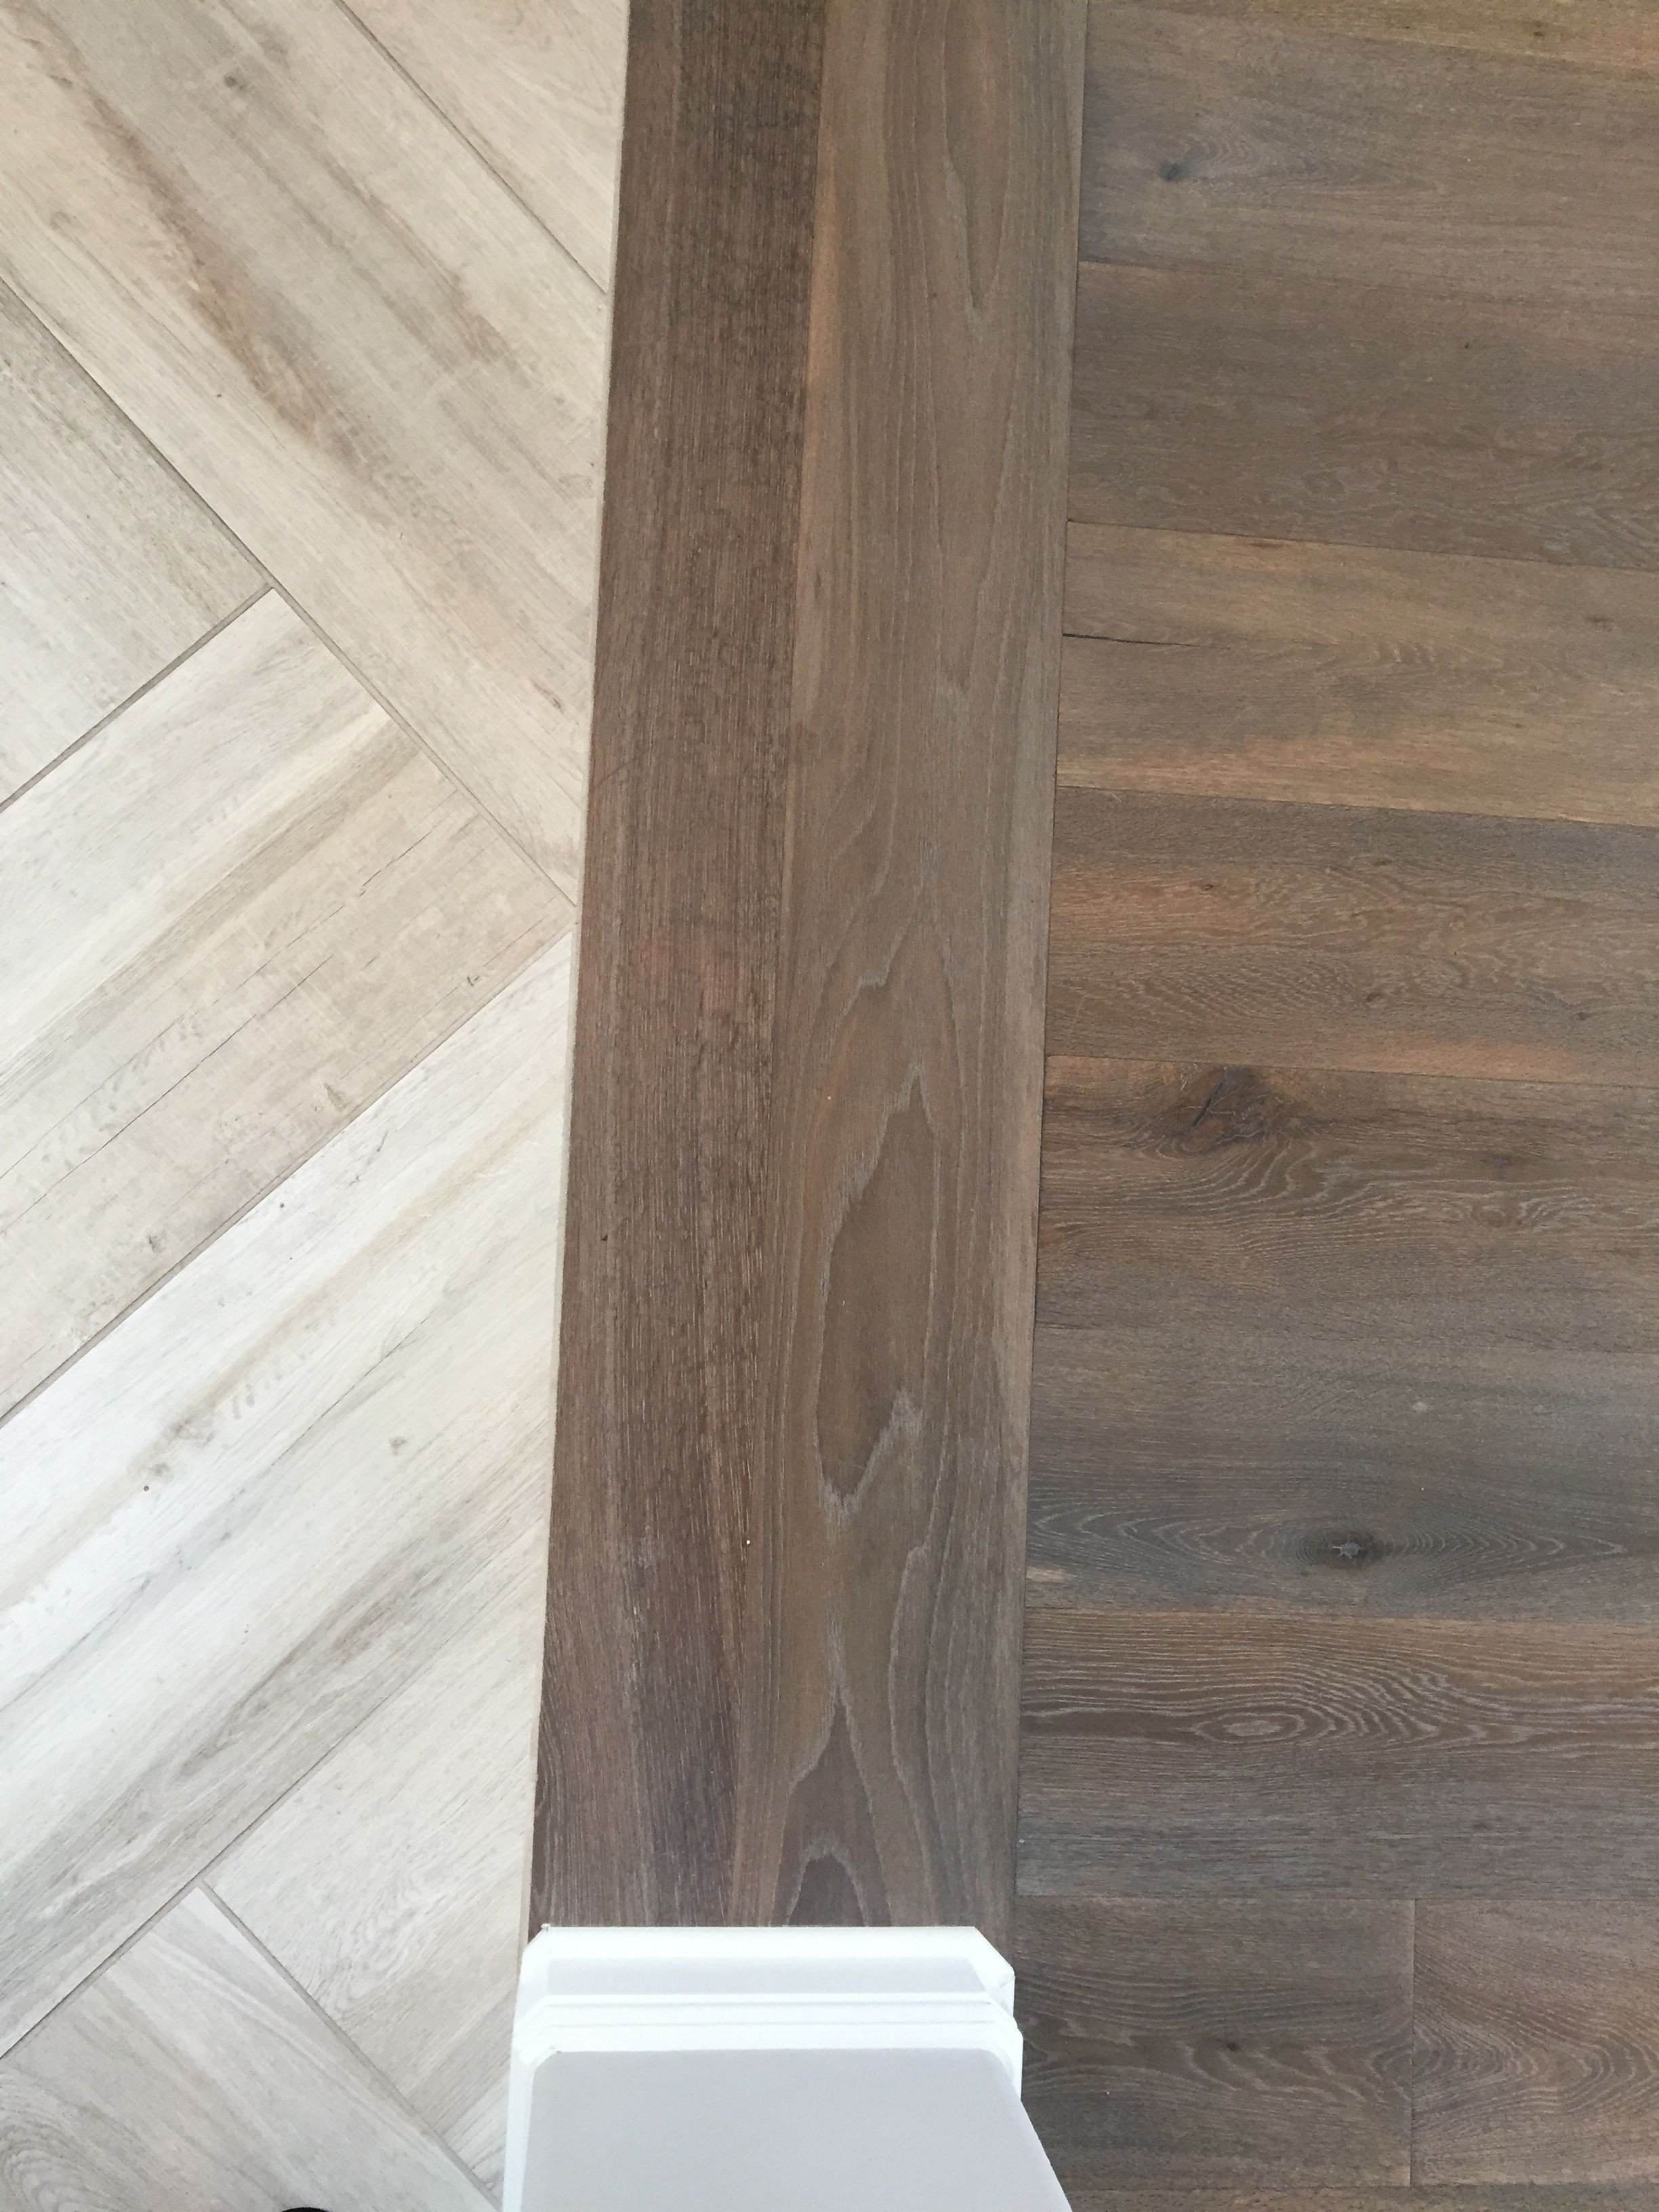 Installing Hardwood Floors On Concrete Of Floor Transition Laminate to Herringbone Tile Pattern Model with Floor Transition Laminate to Herringbone Tile Pattern Herringbone Tile Pattern Herringbone Wood Floor